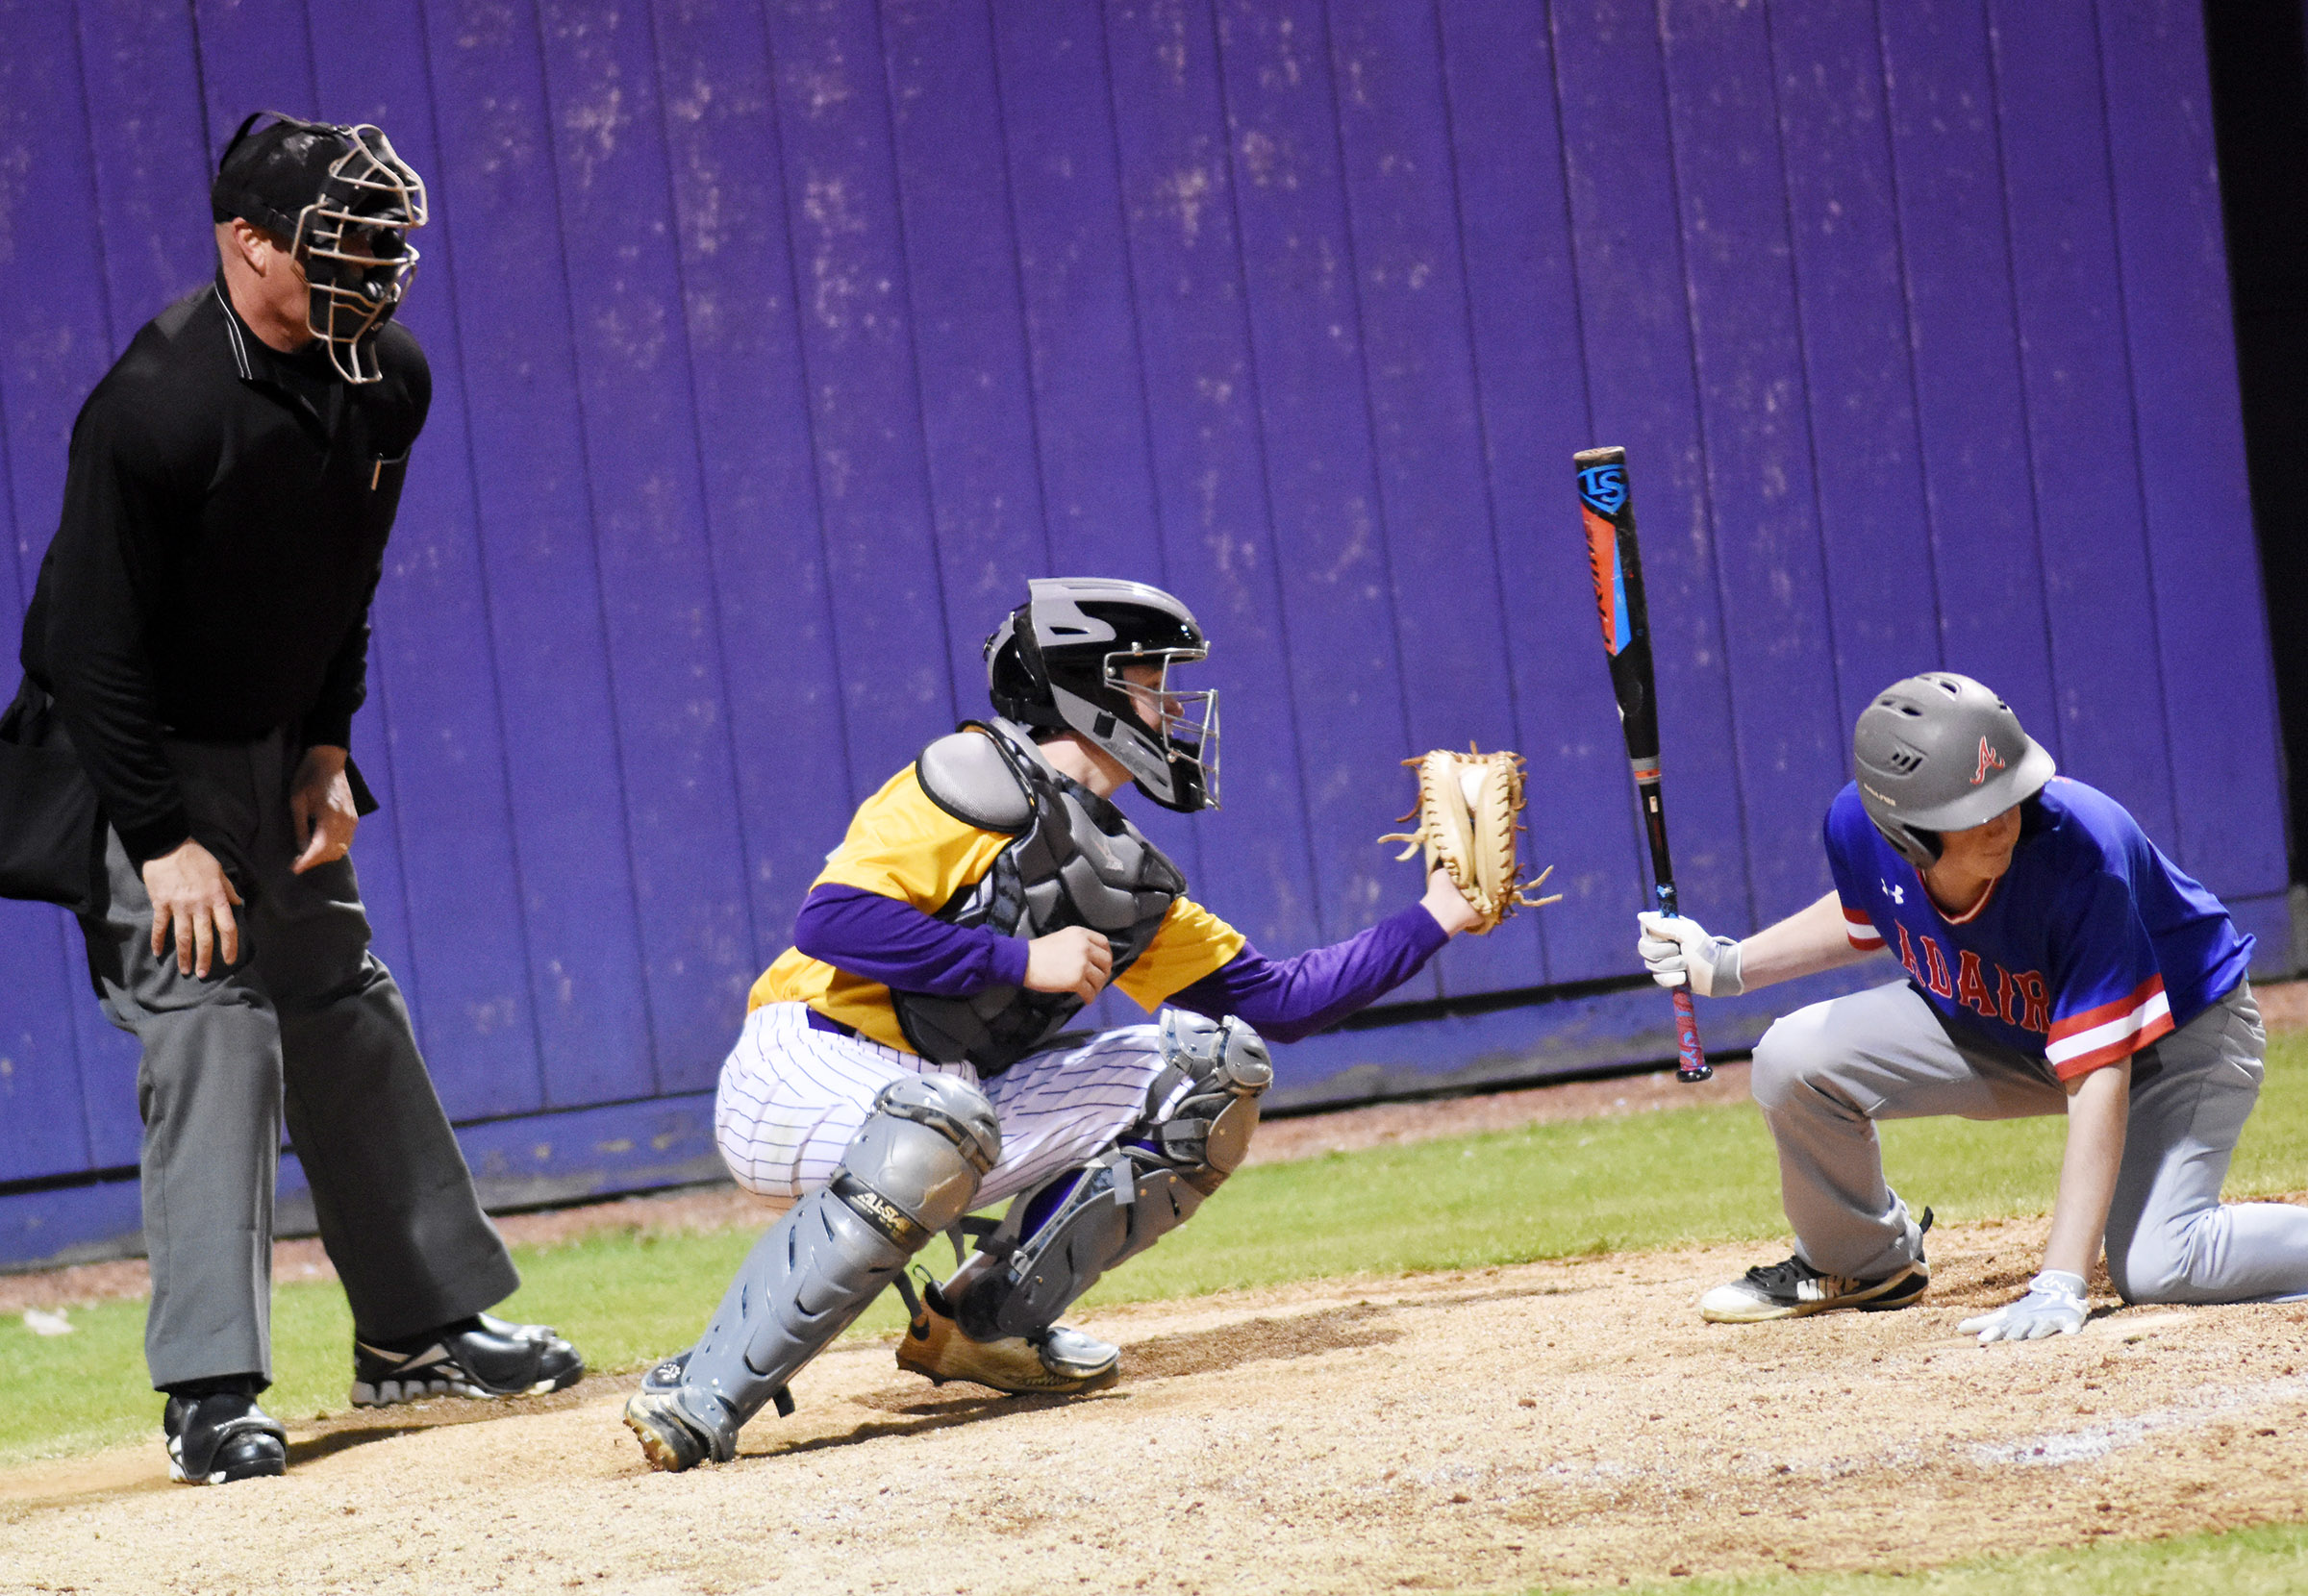 CHS sophomore Dillon Whitaker catches for the Eagles.